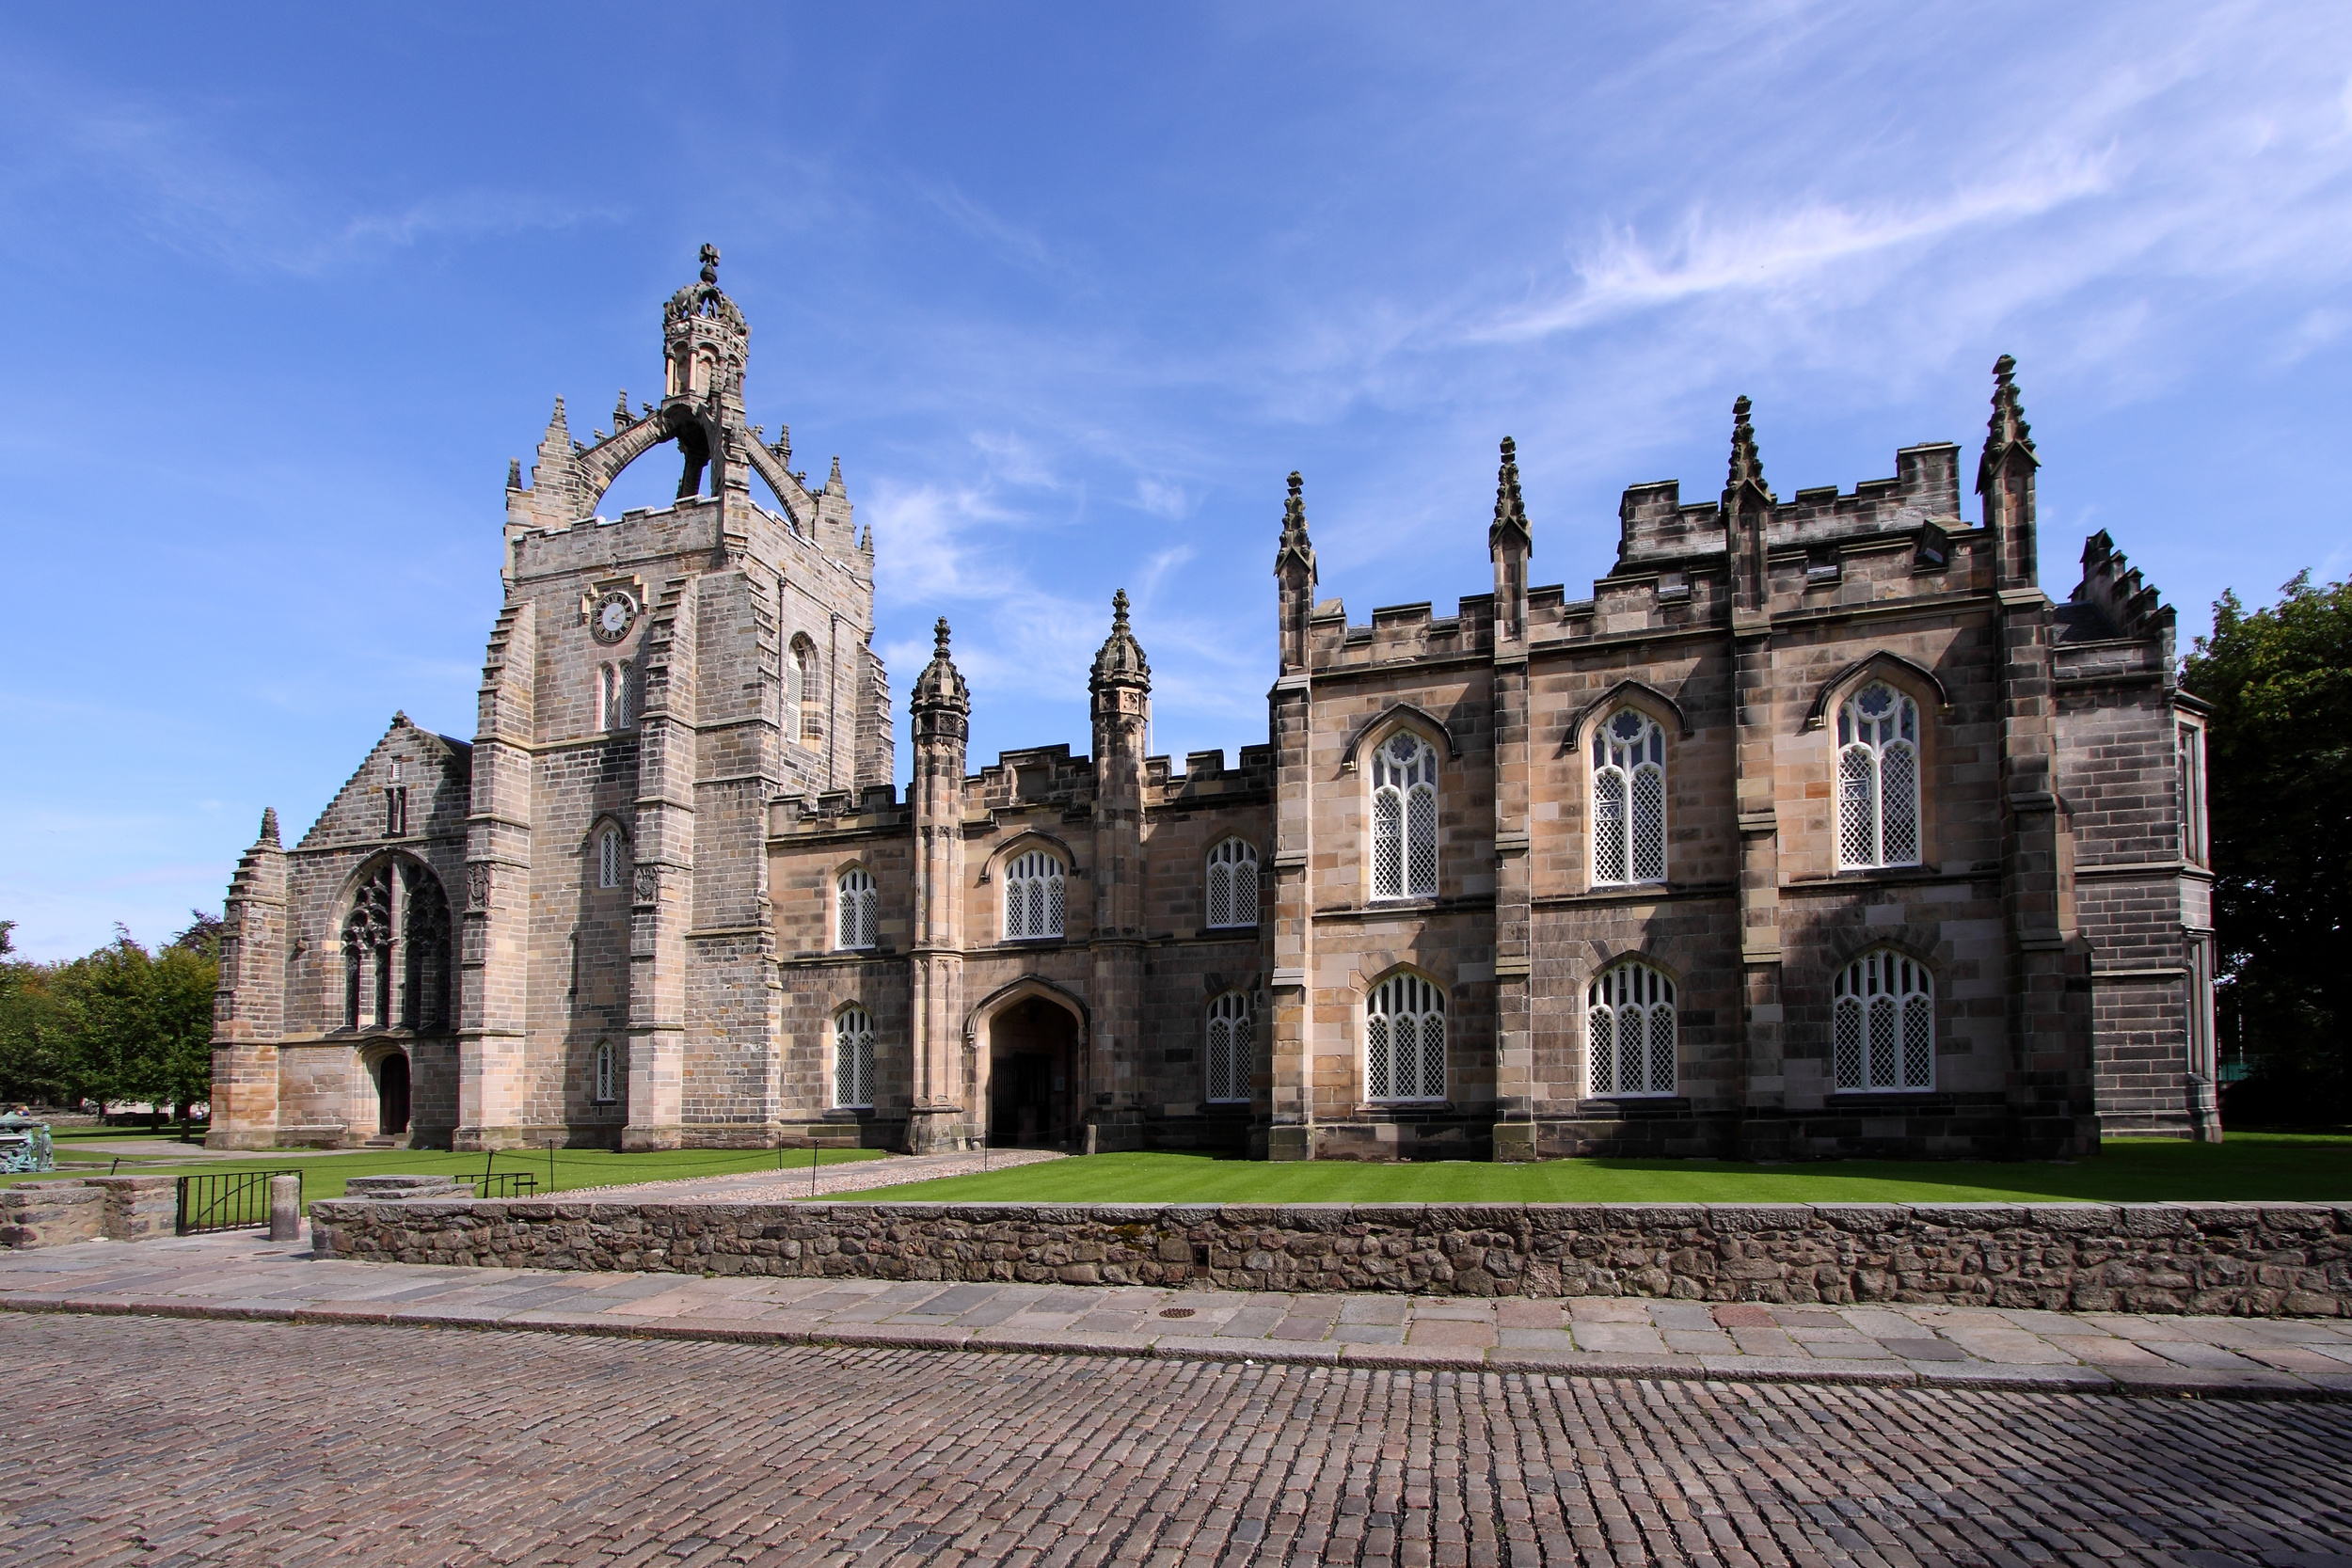 The University of Aberdeen founded in 1495